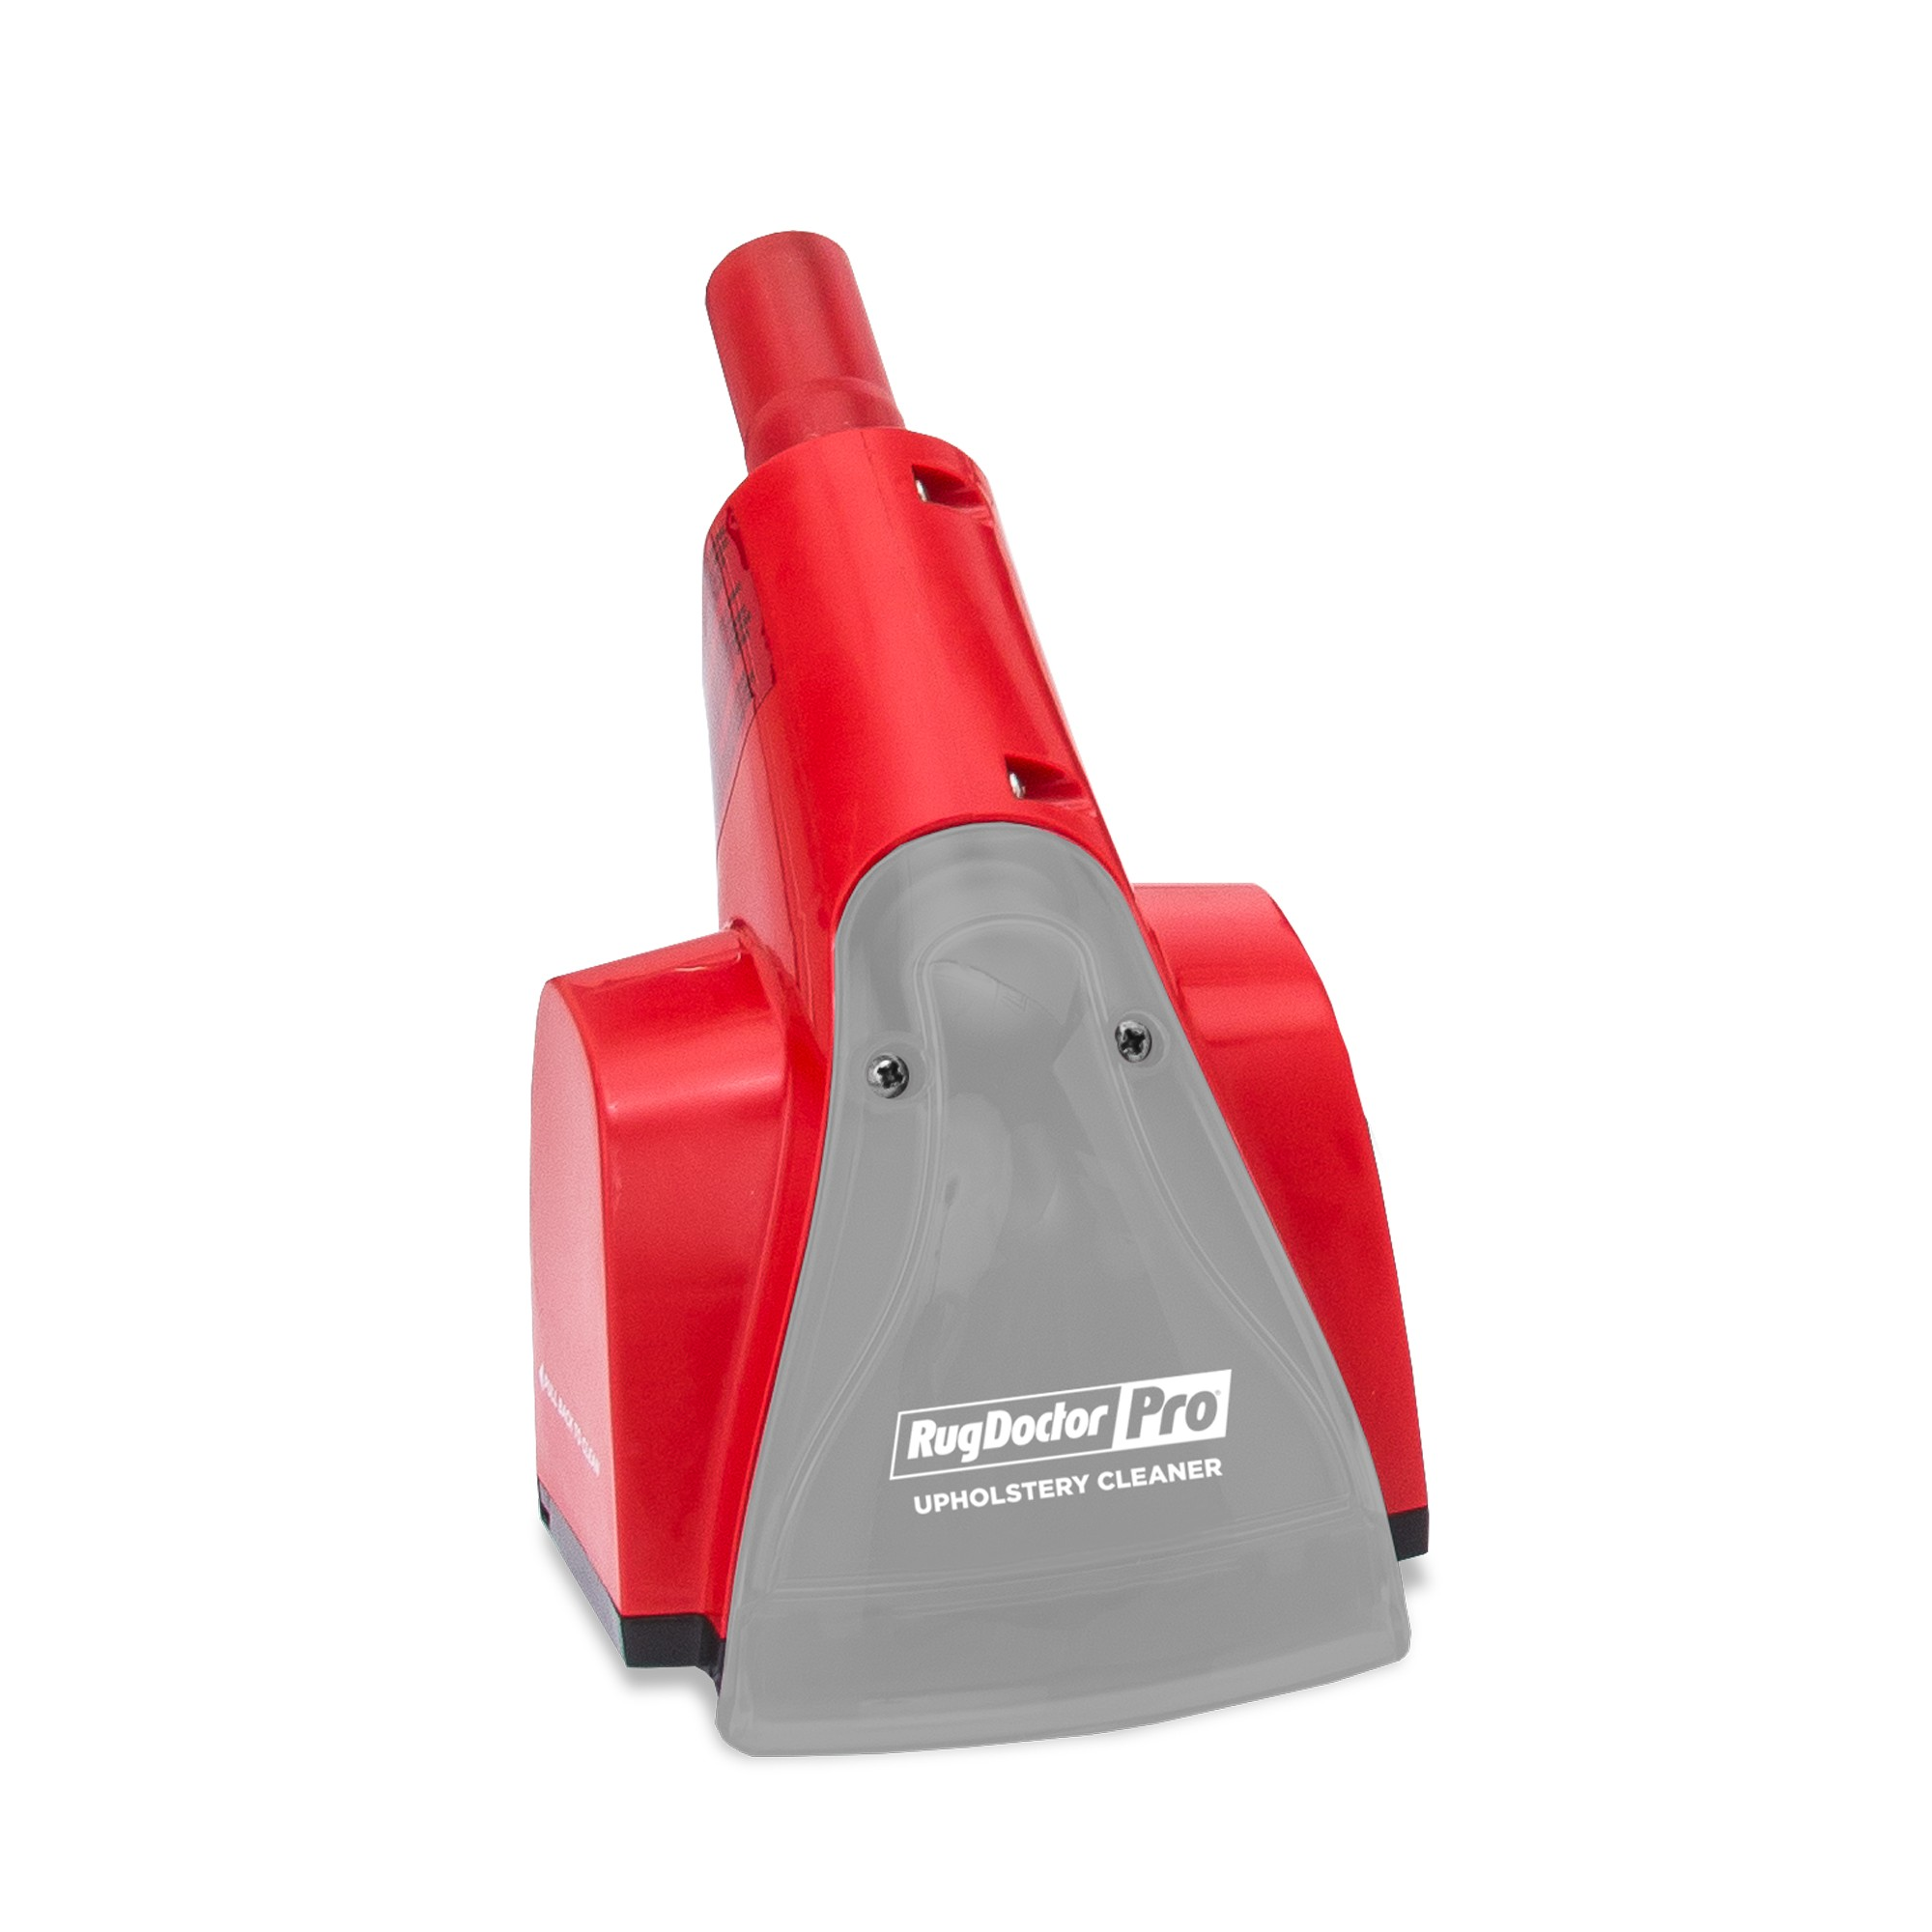 Pro-Deep Carpet Cleaner Upholstery Tool Head